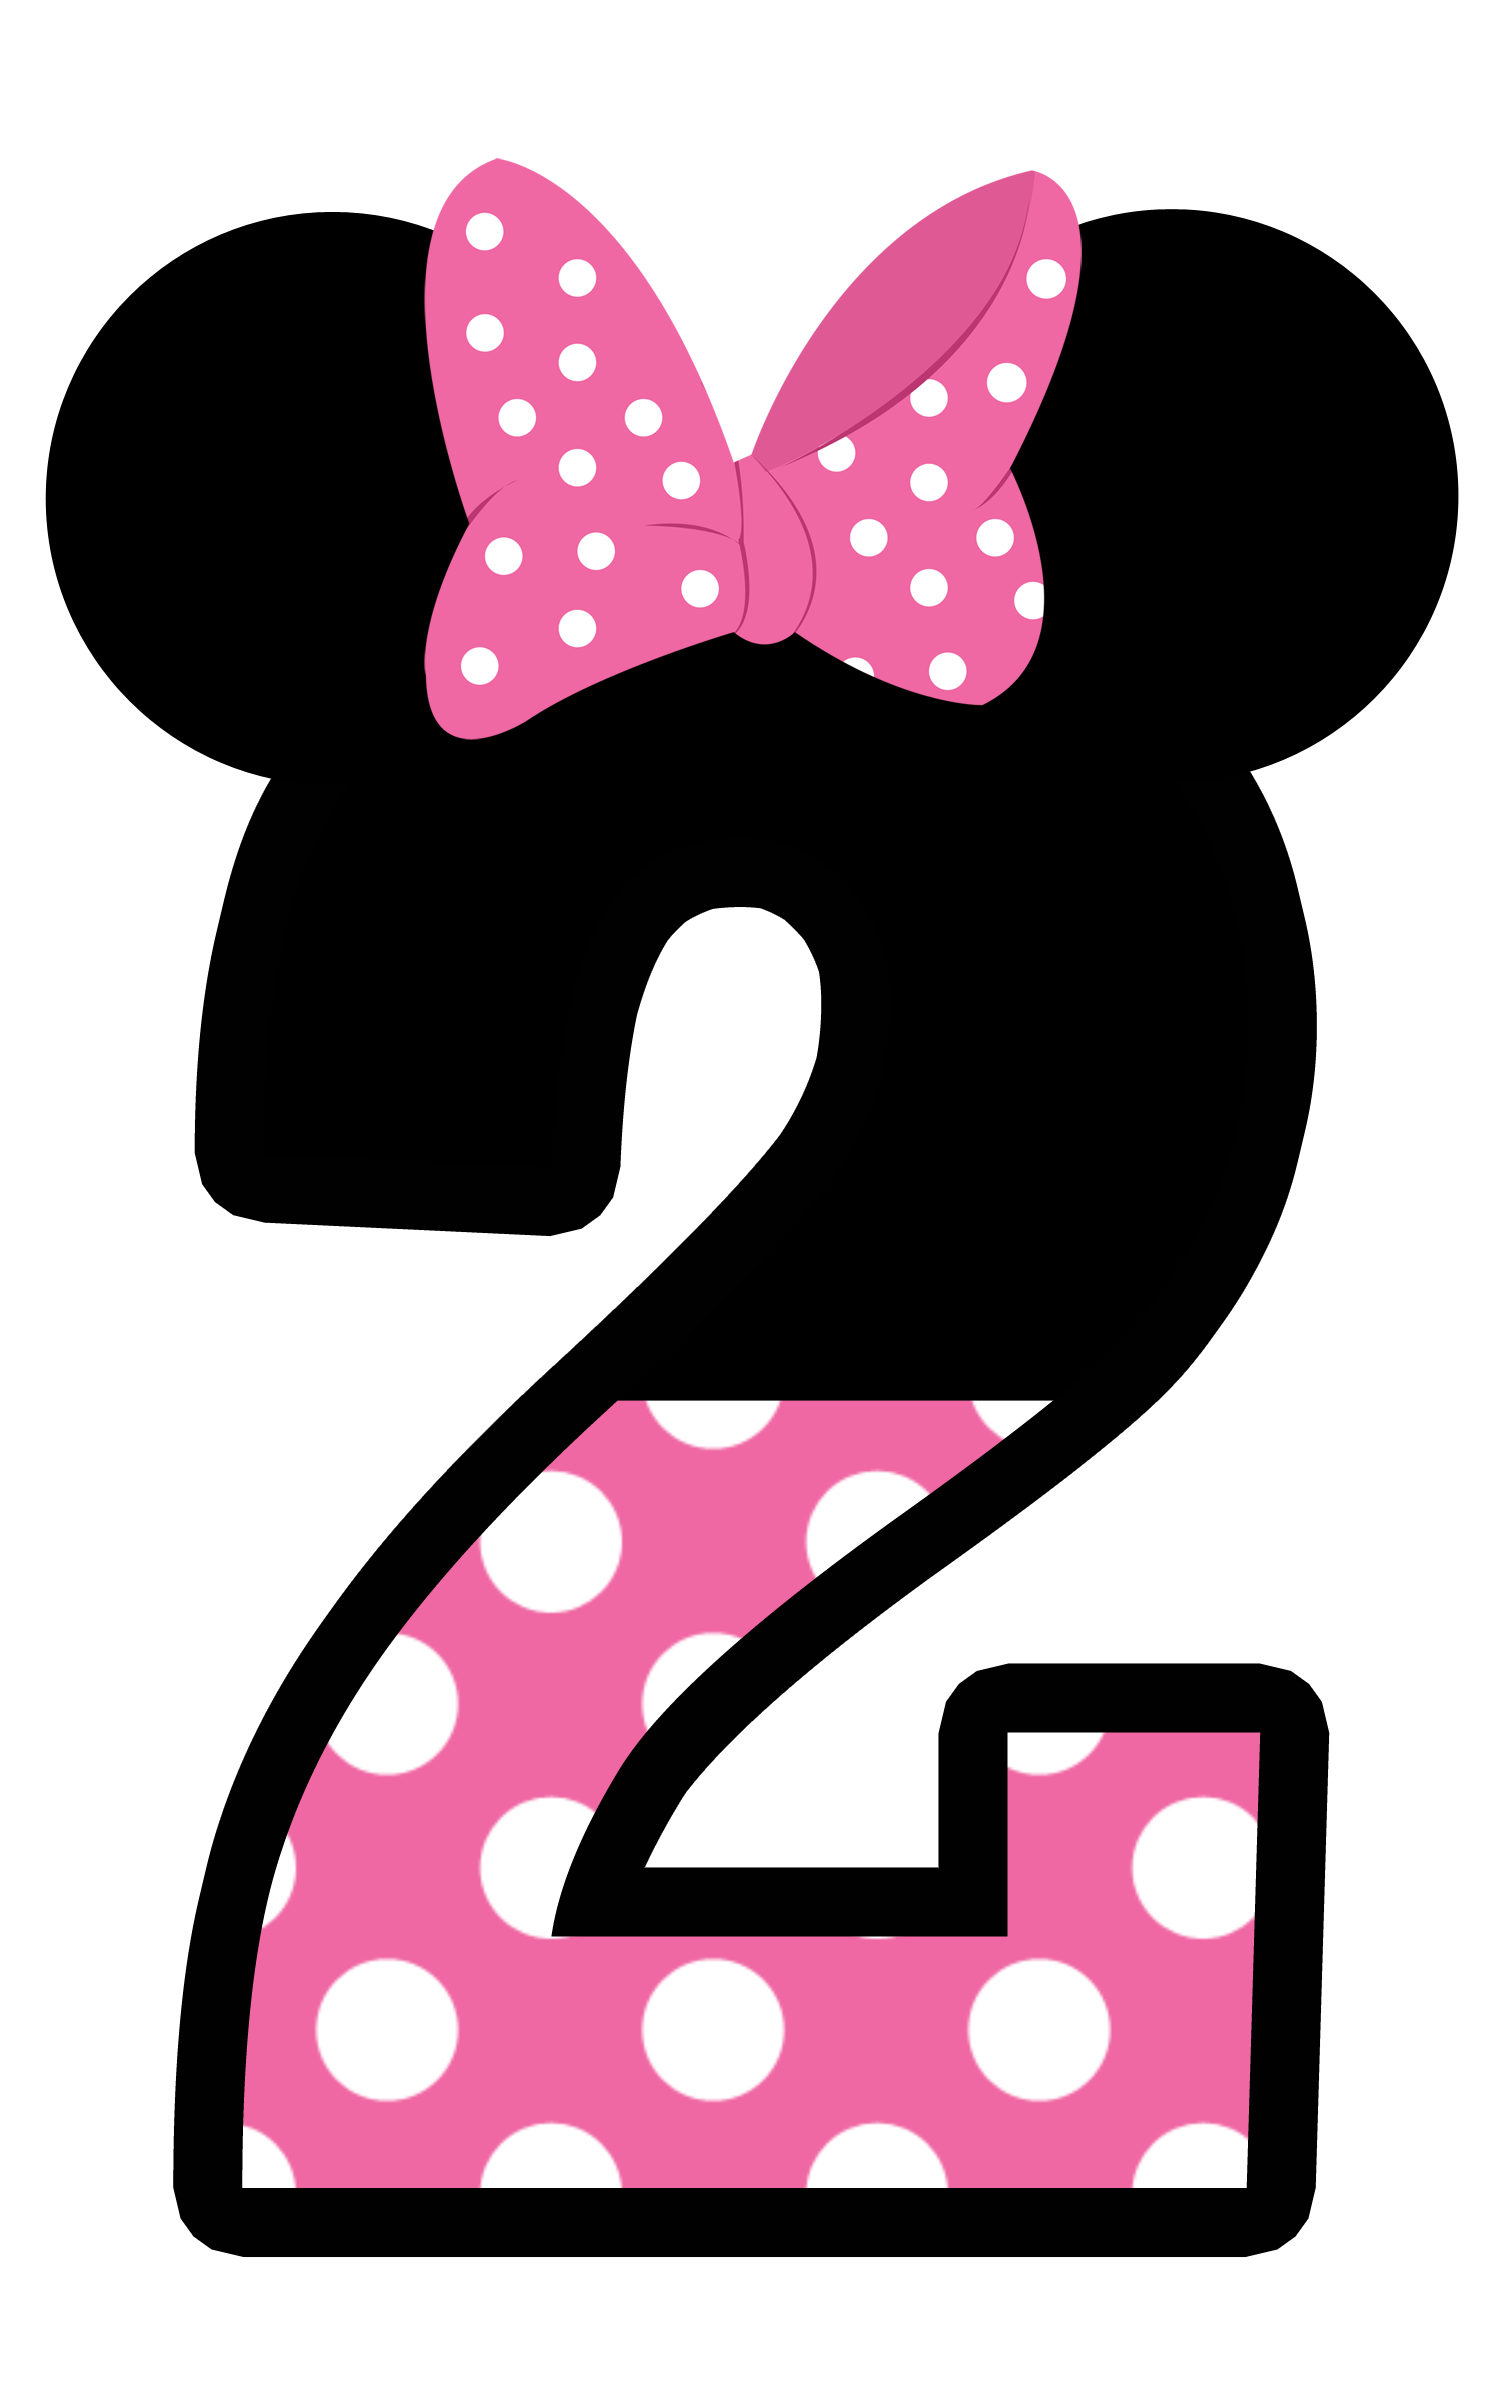 pink number 2 clipart png - Clipground